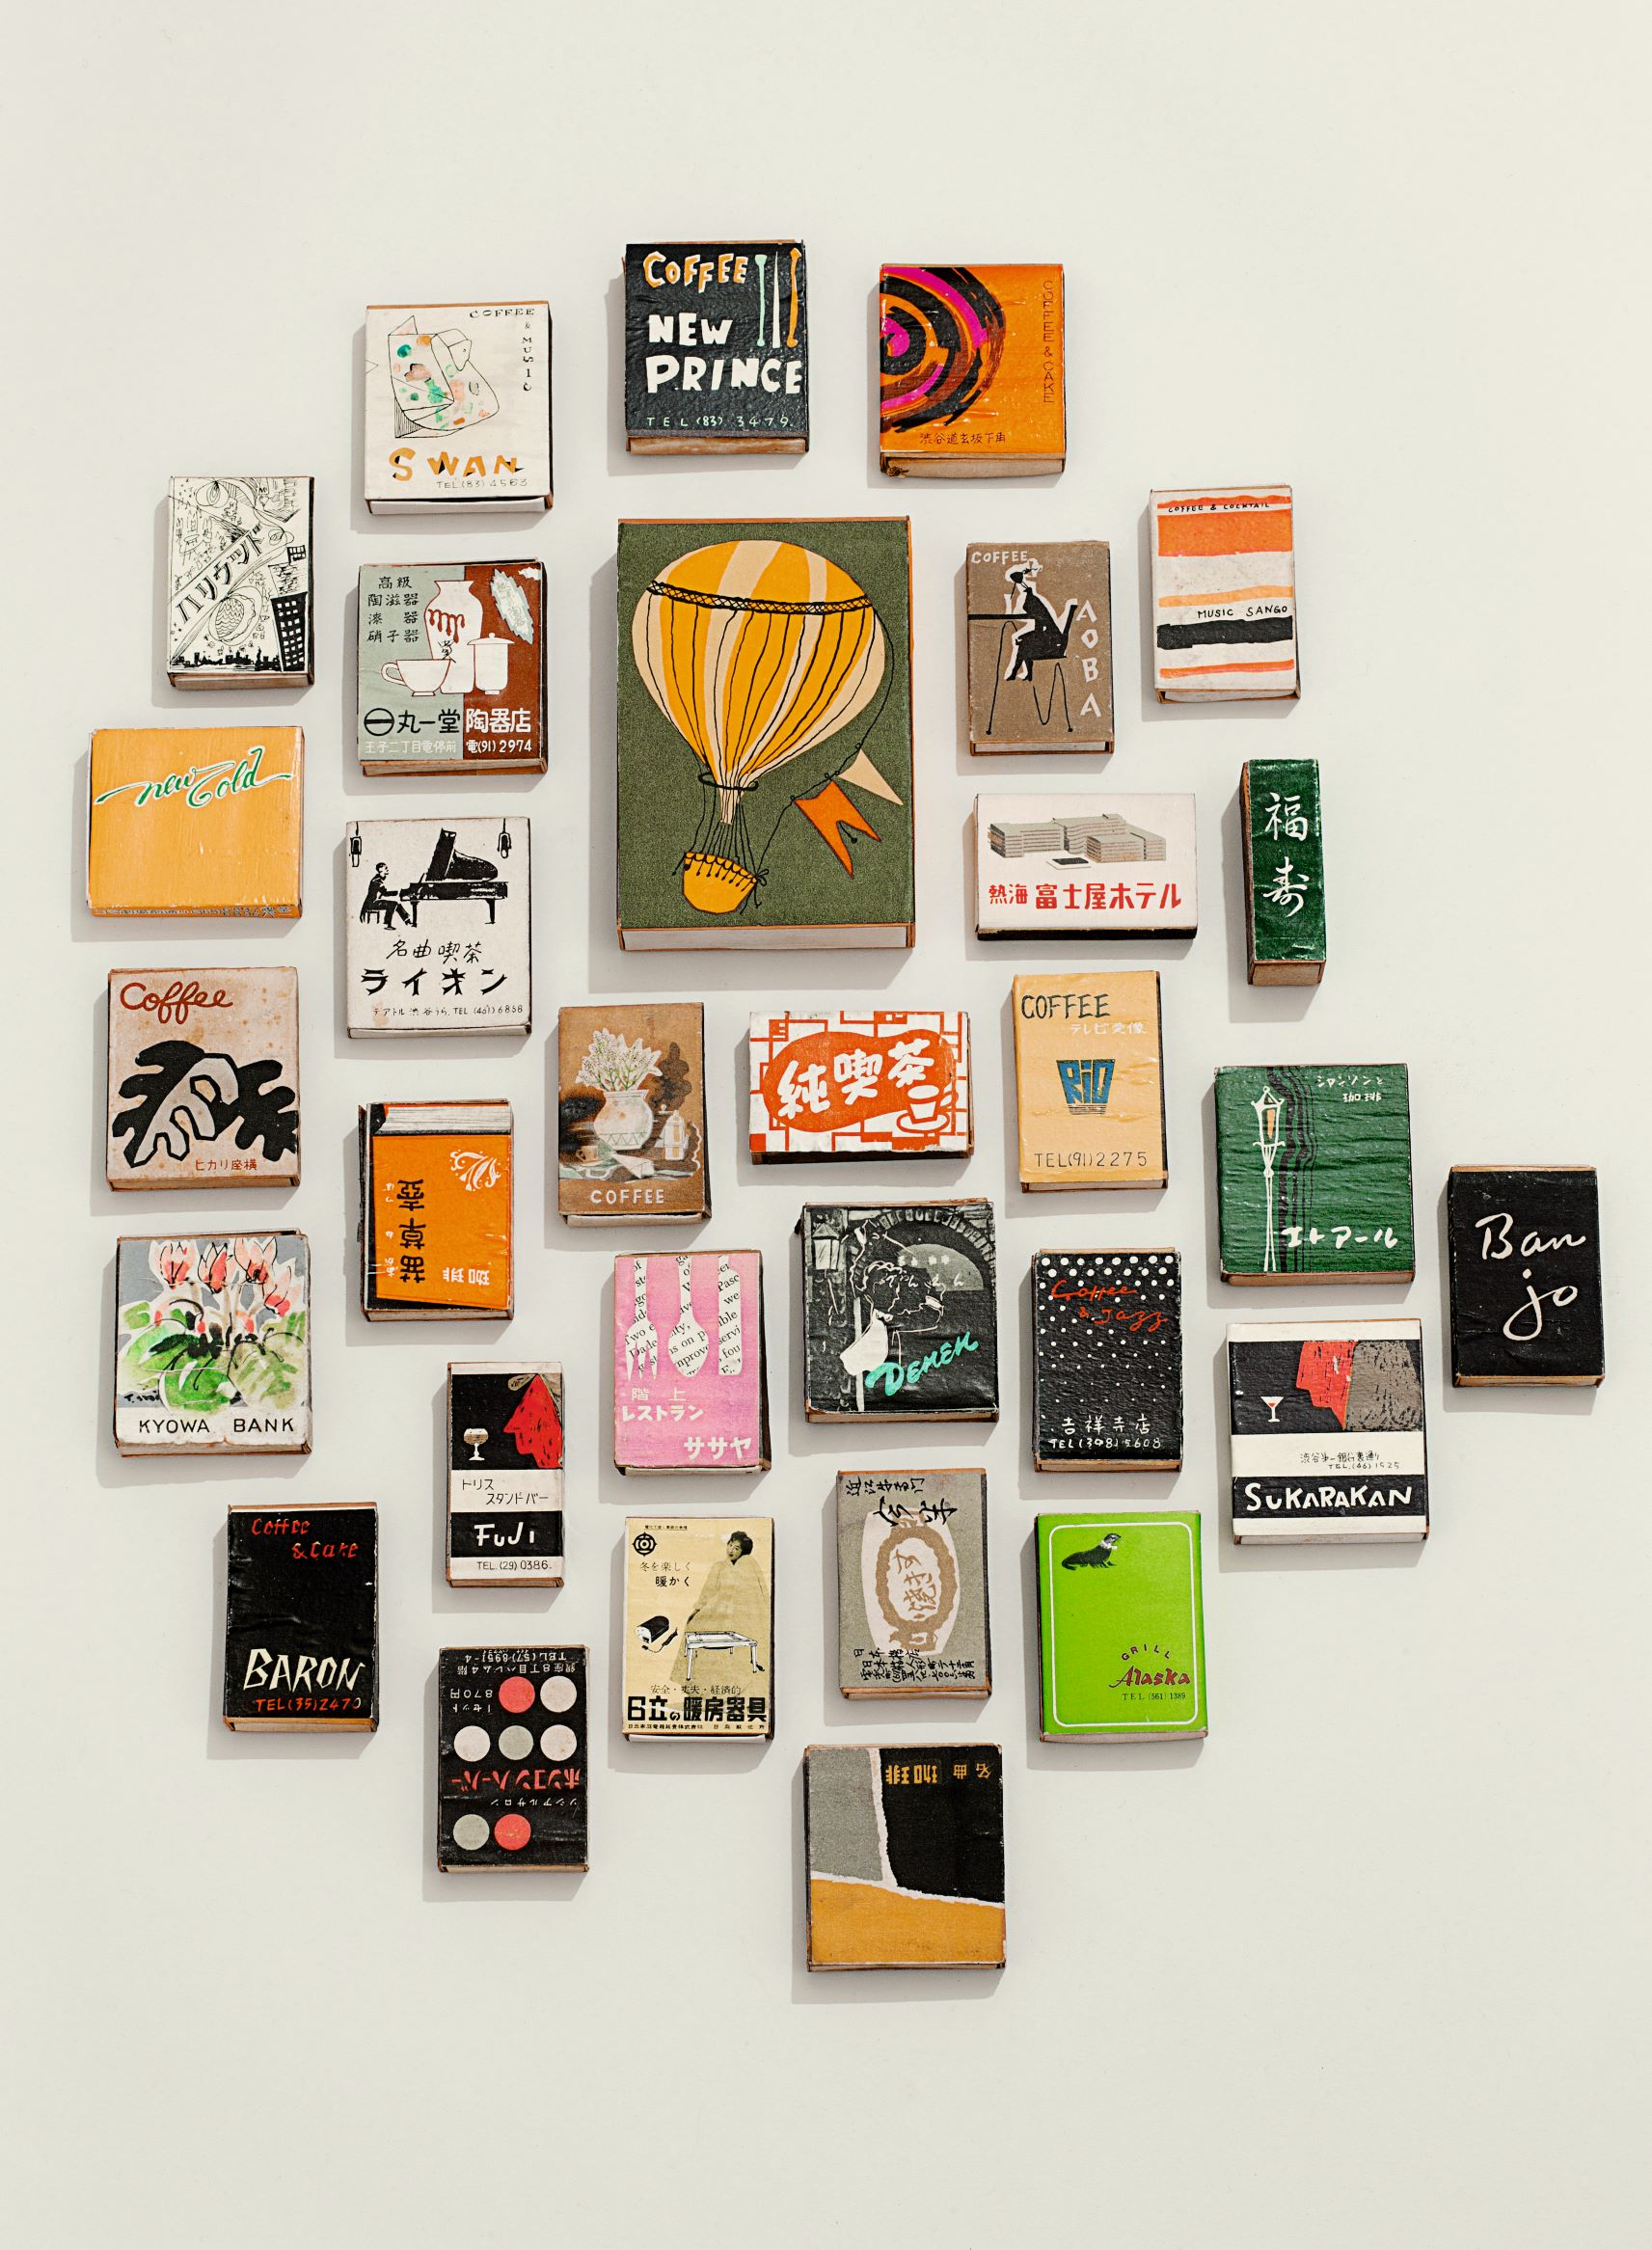 Paul Smith's Matchbox Collection